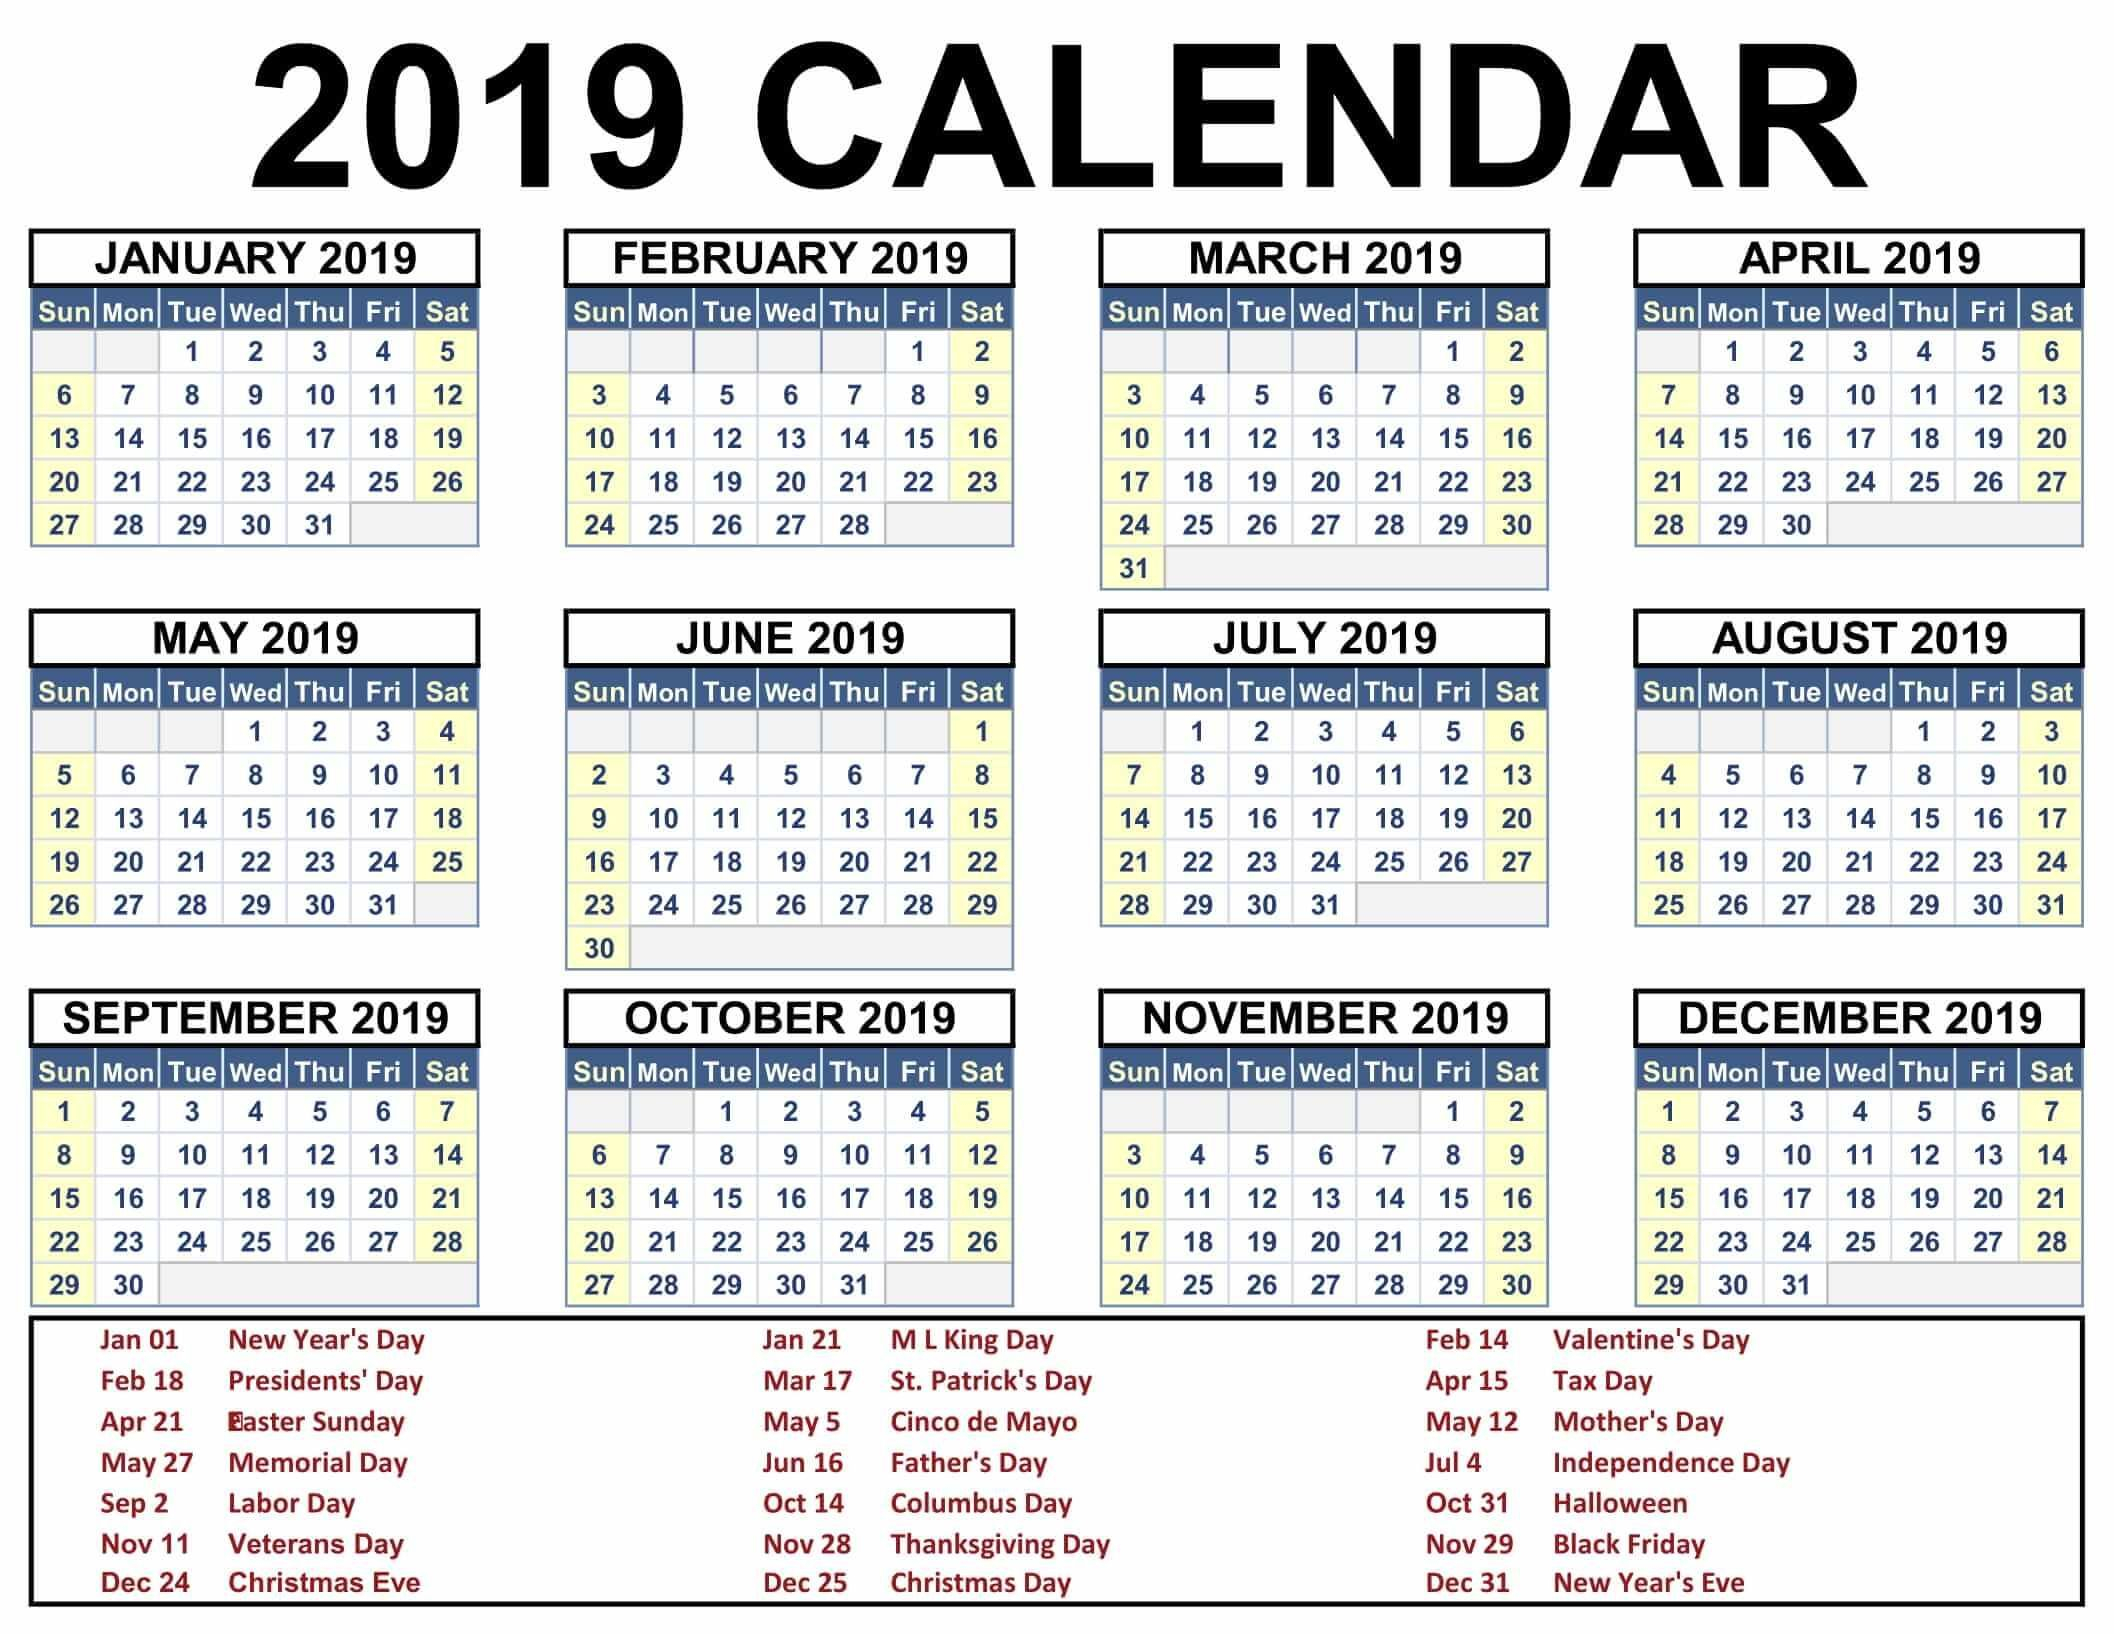 2019 Calendar With Jewish Holidays | Calendar 2019 Template